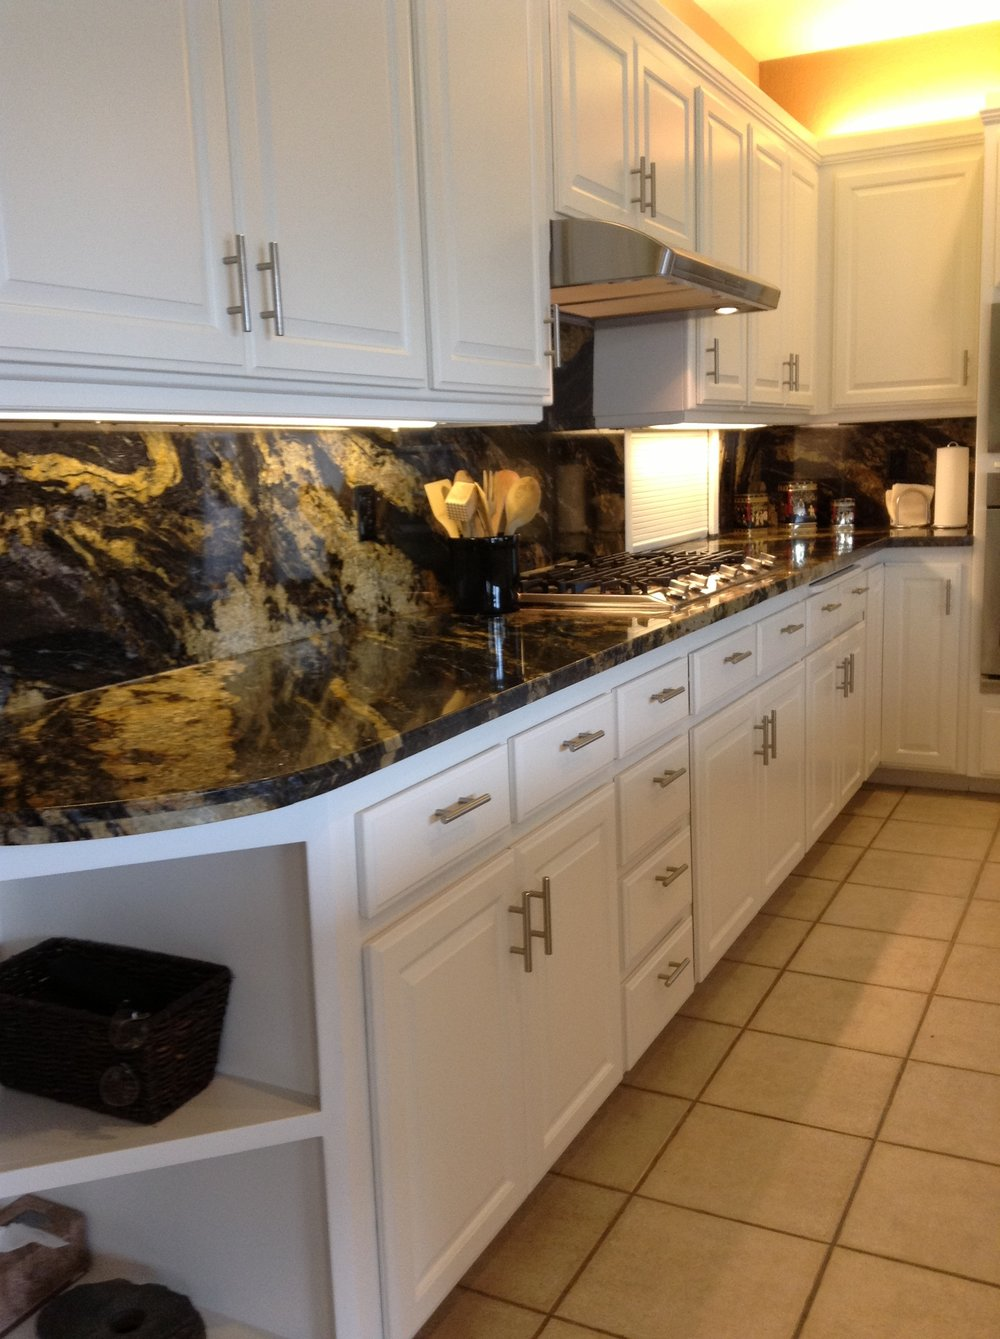 Contemporary Kitchen Remodel Design with Stainless Steel Appliances in Chico, CA